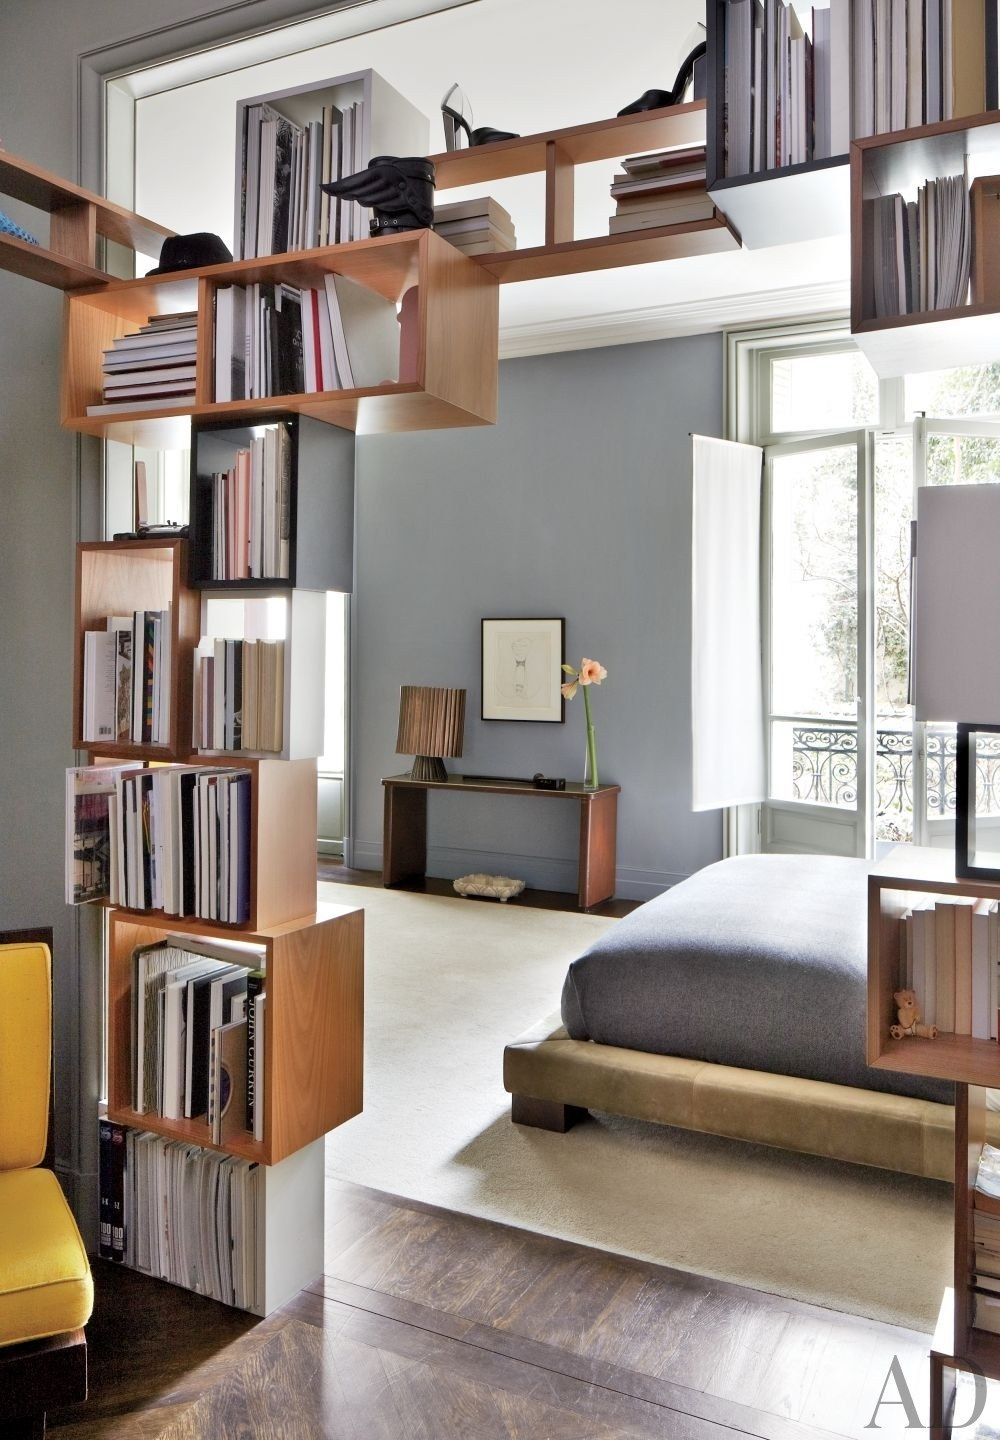 Creative ideas for home interior  things every something should have  architectural digest and